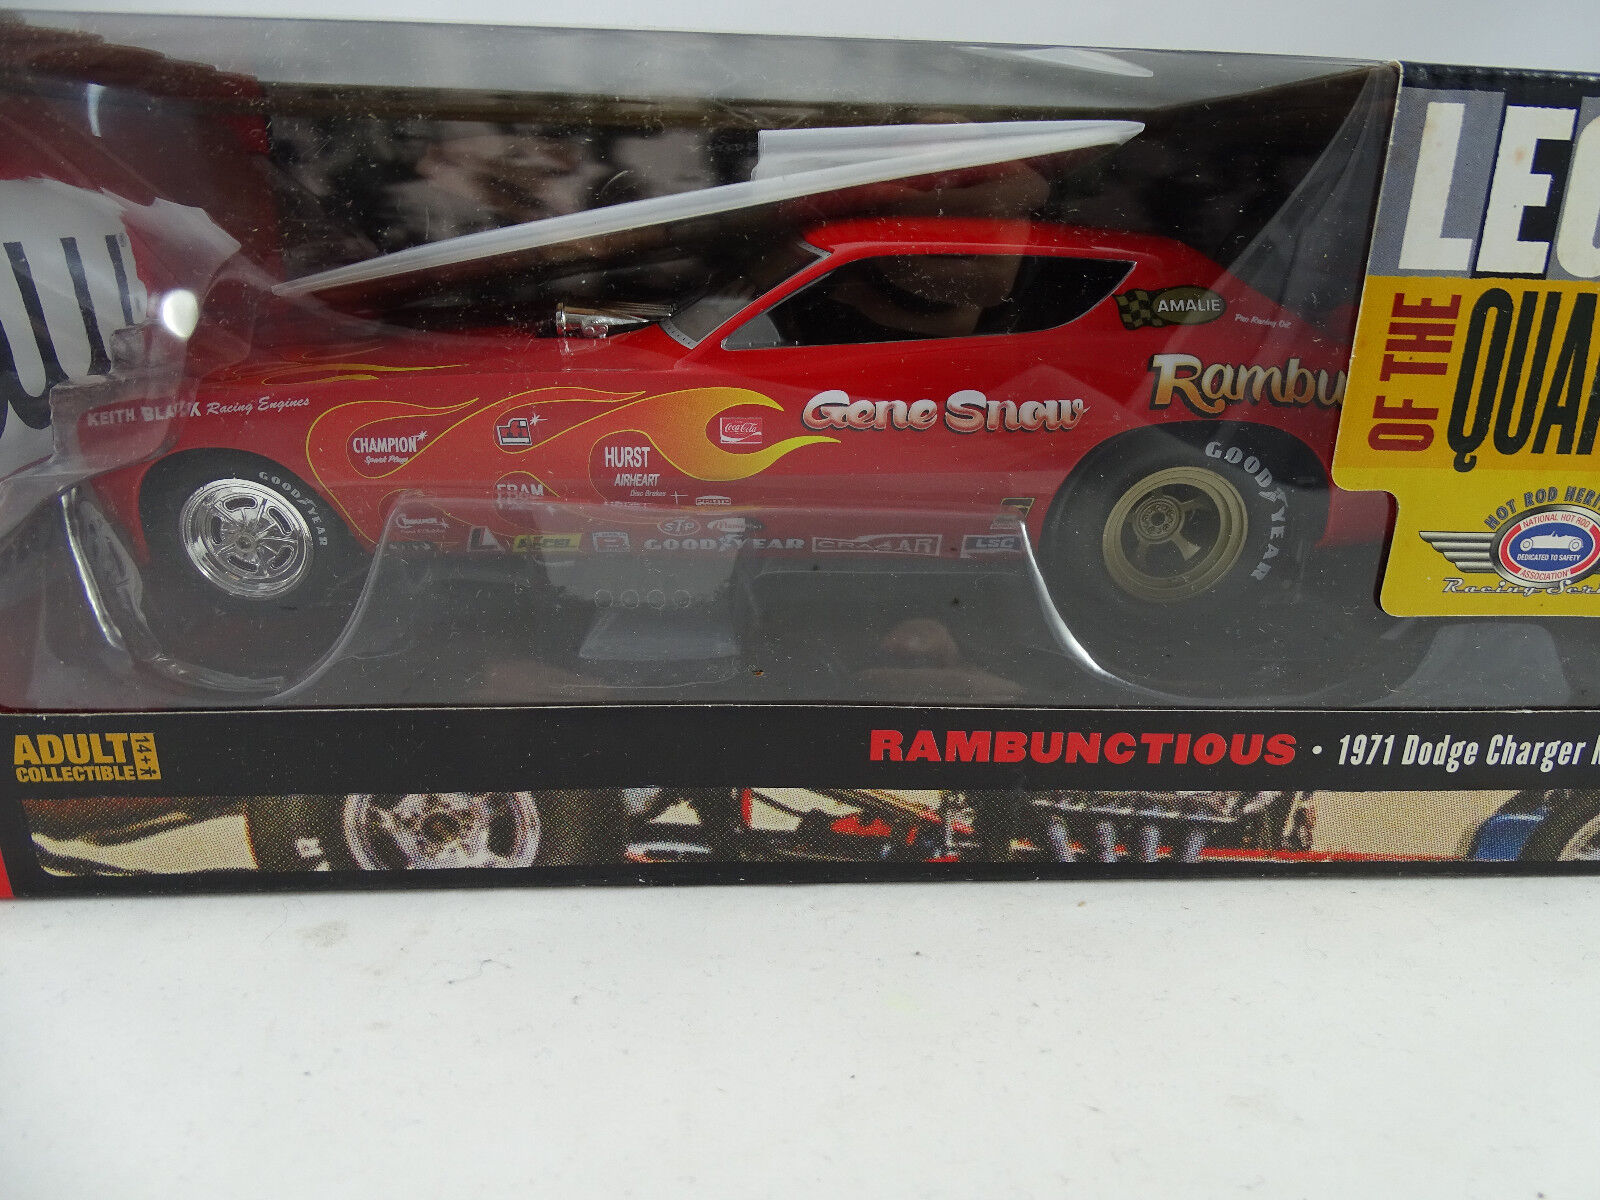 1 18 Autoworld ertl - 1971 Dodge Charger rambunctious NHRA funny Car